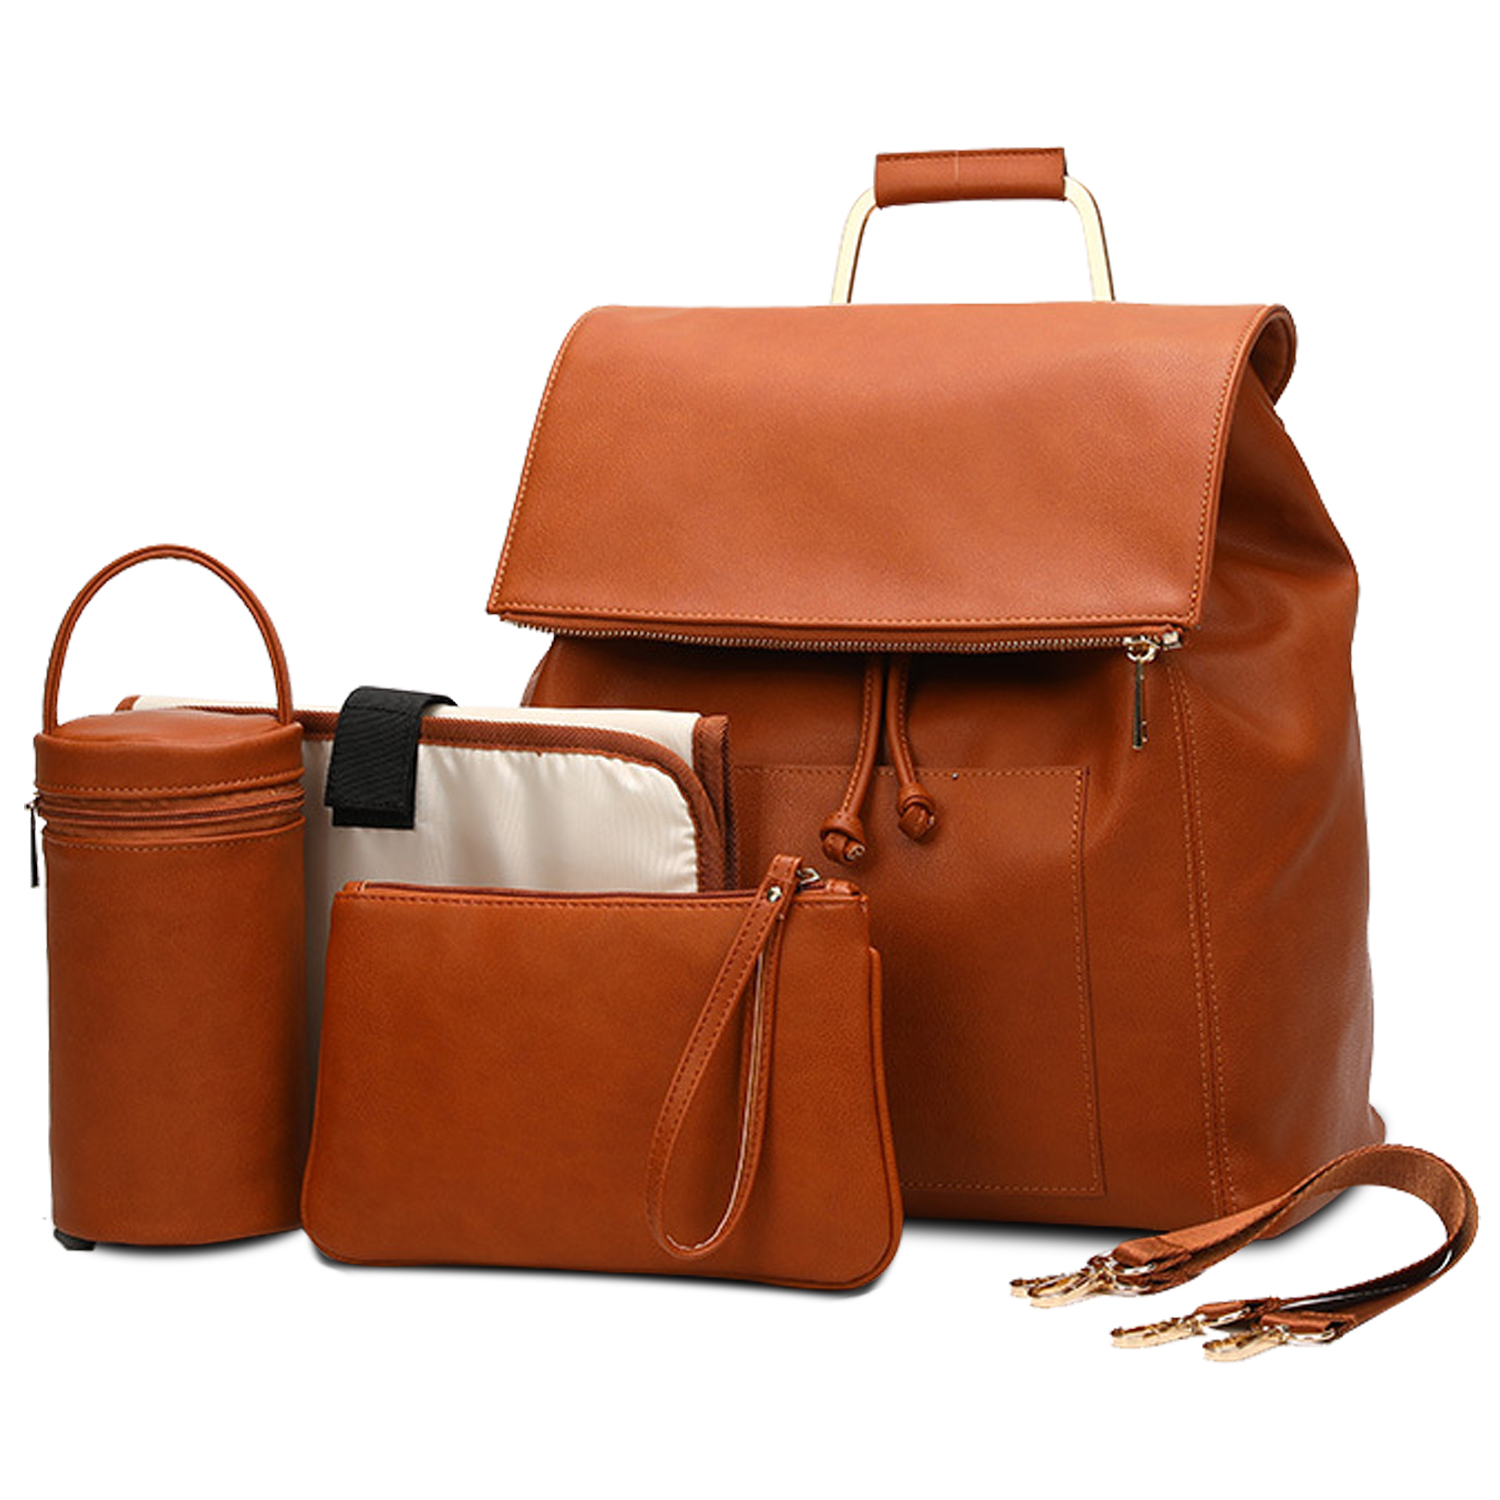 Personalized Gift for Women Leather Backpack Laptop Backpack Large Leather Backpack Brown Leather Backpack Leather Diaper Bag Backpack